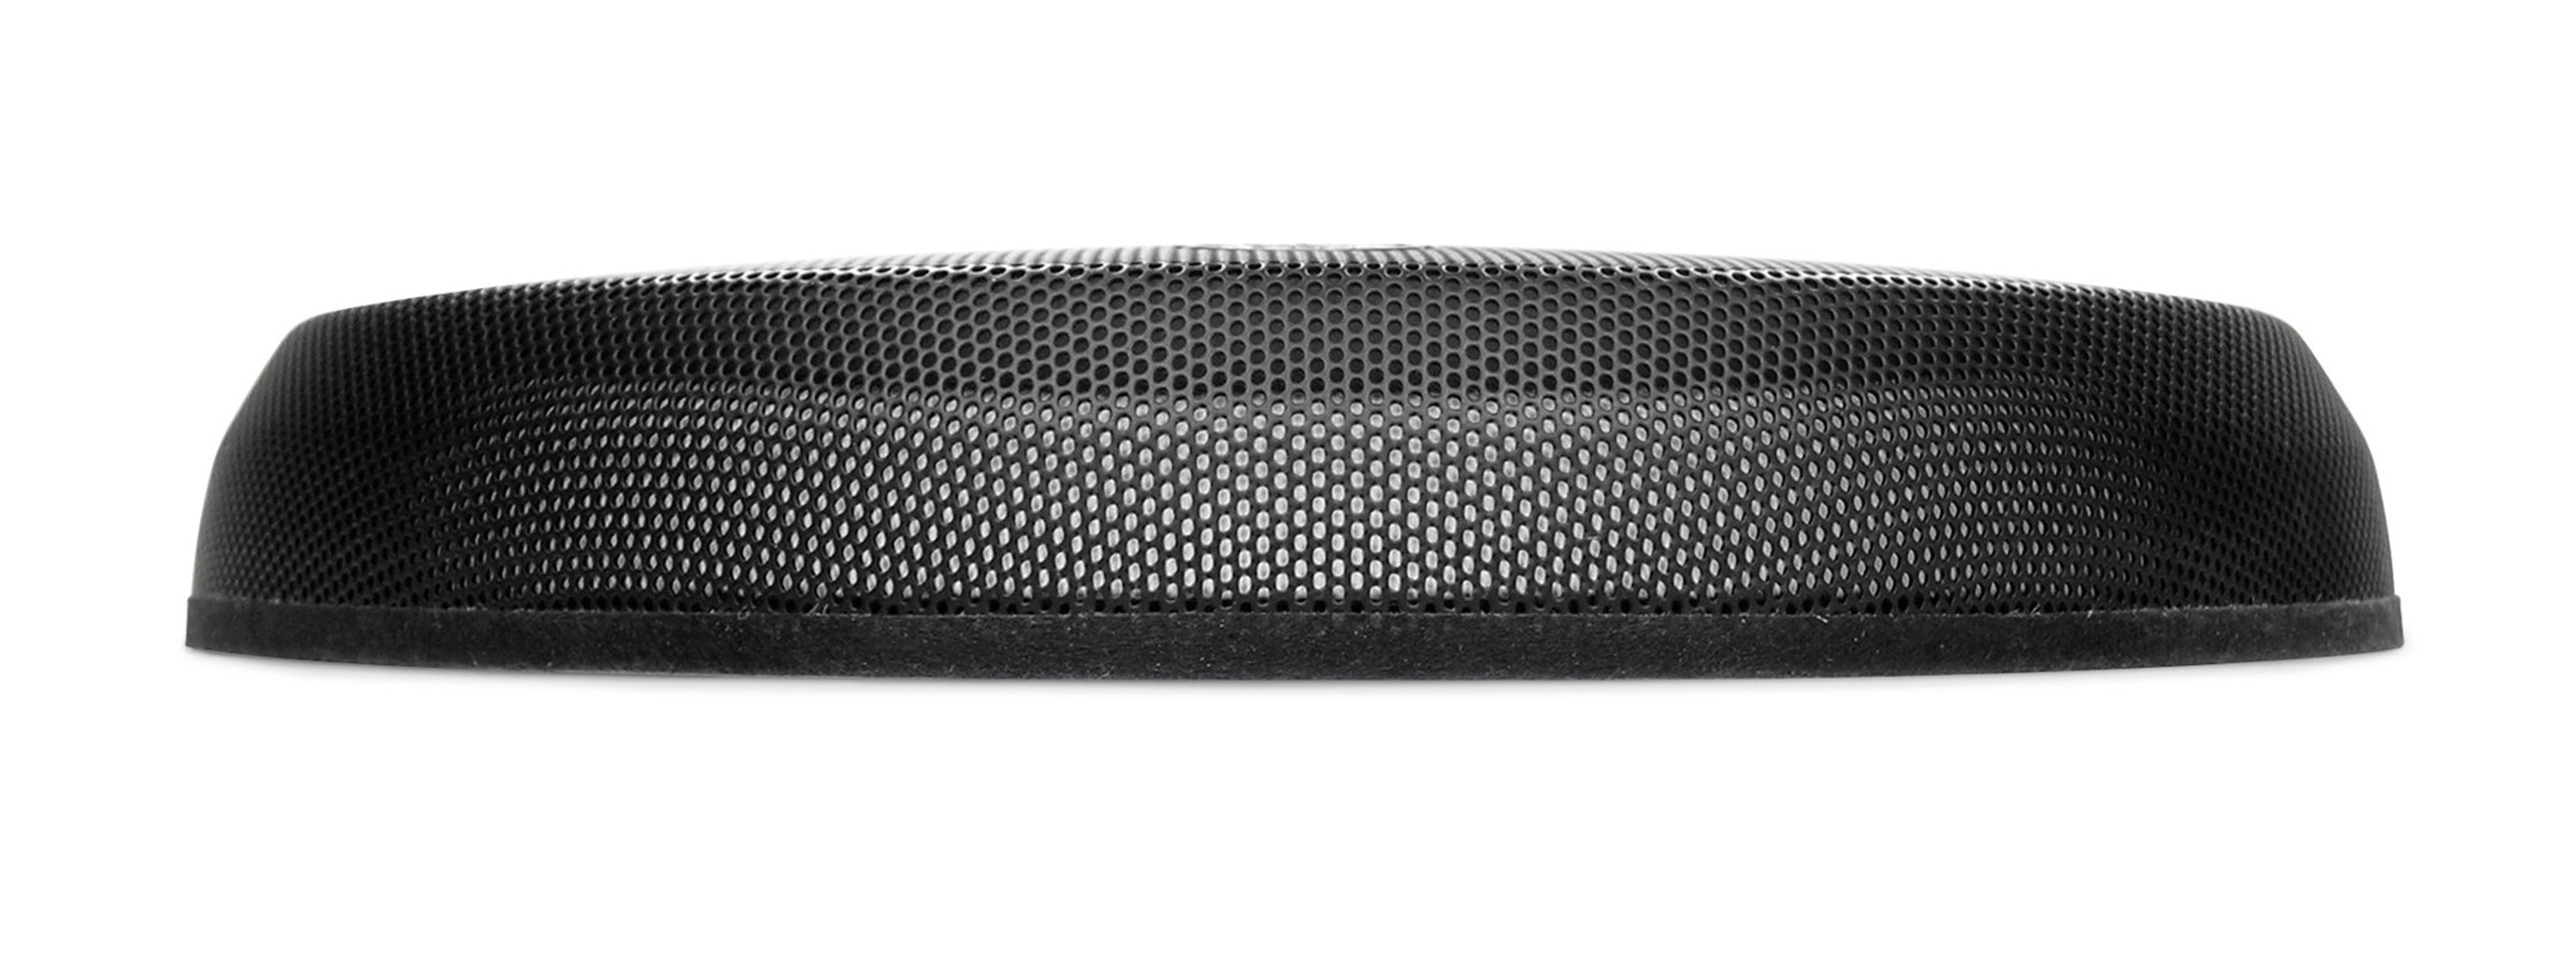 Profile of SGR-W6v2 Speaker Grille